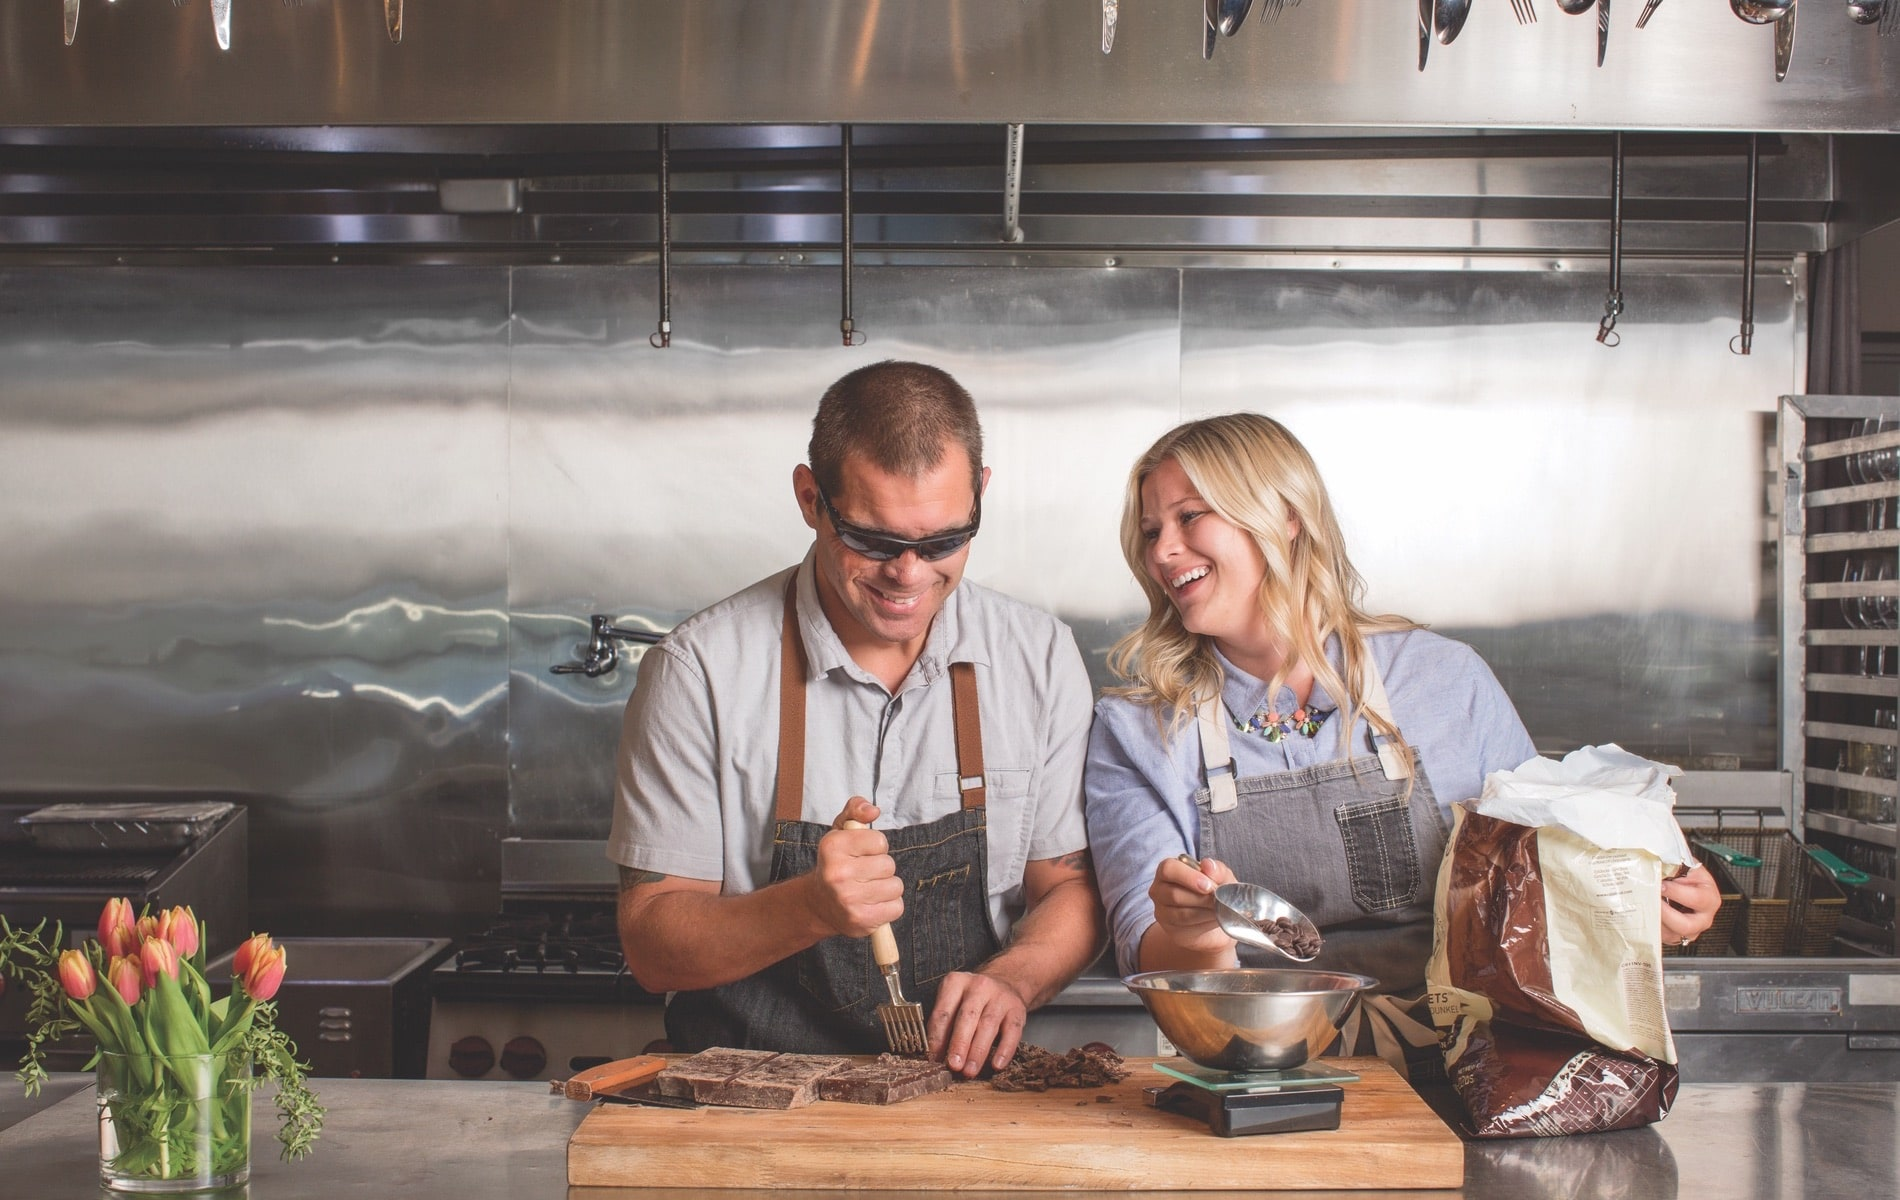 EOD Extra Ordinary Delights founders Aaron and McKayla Hale